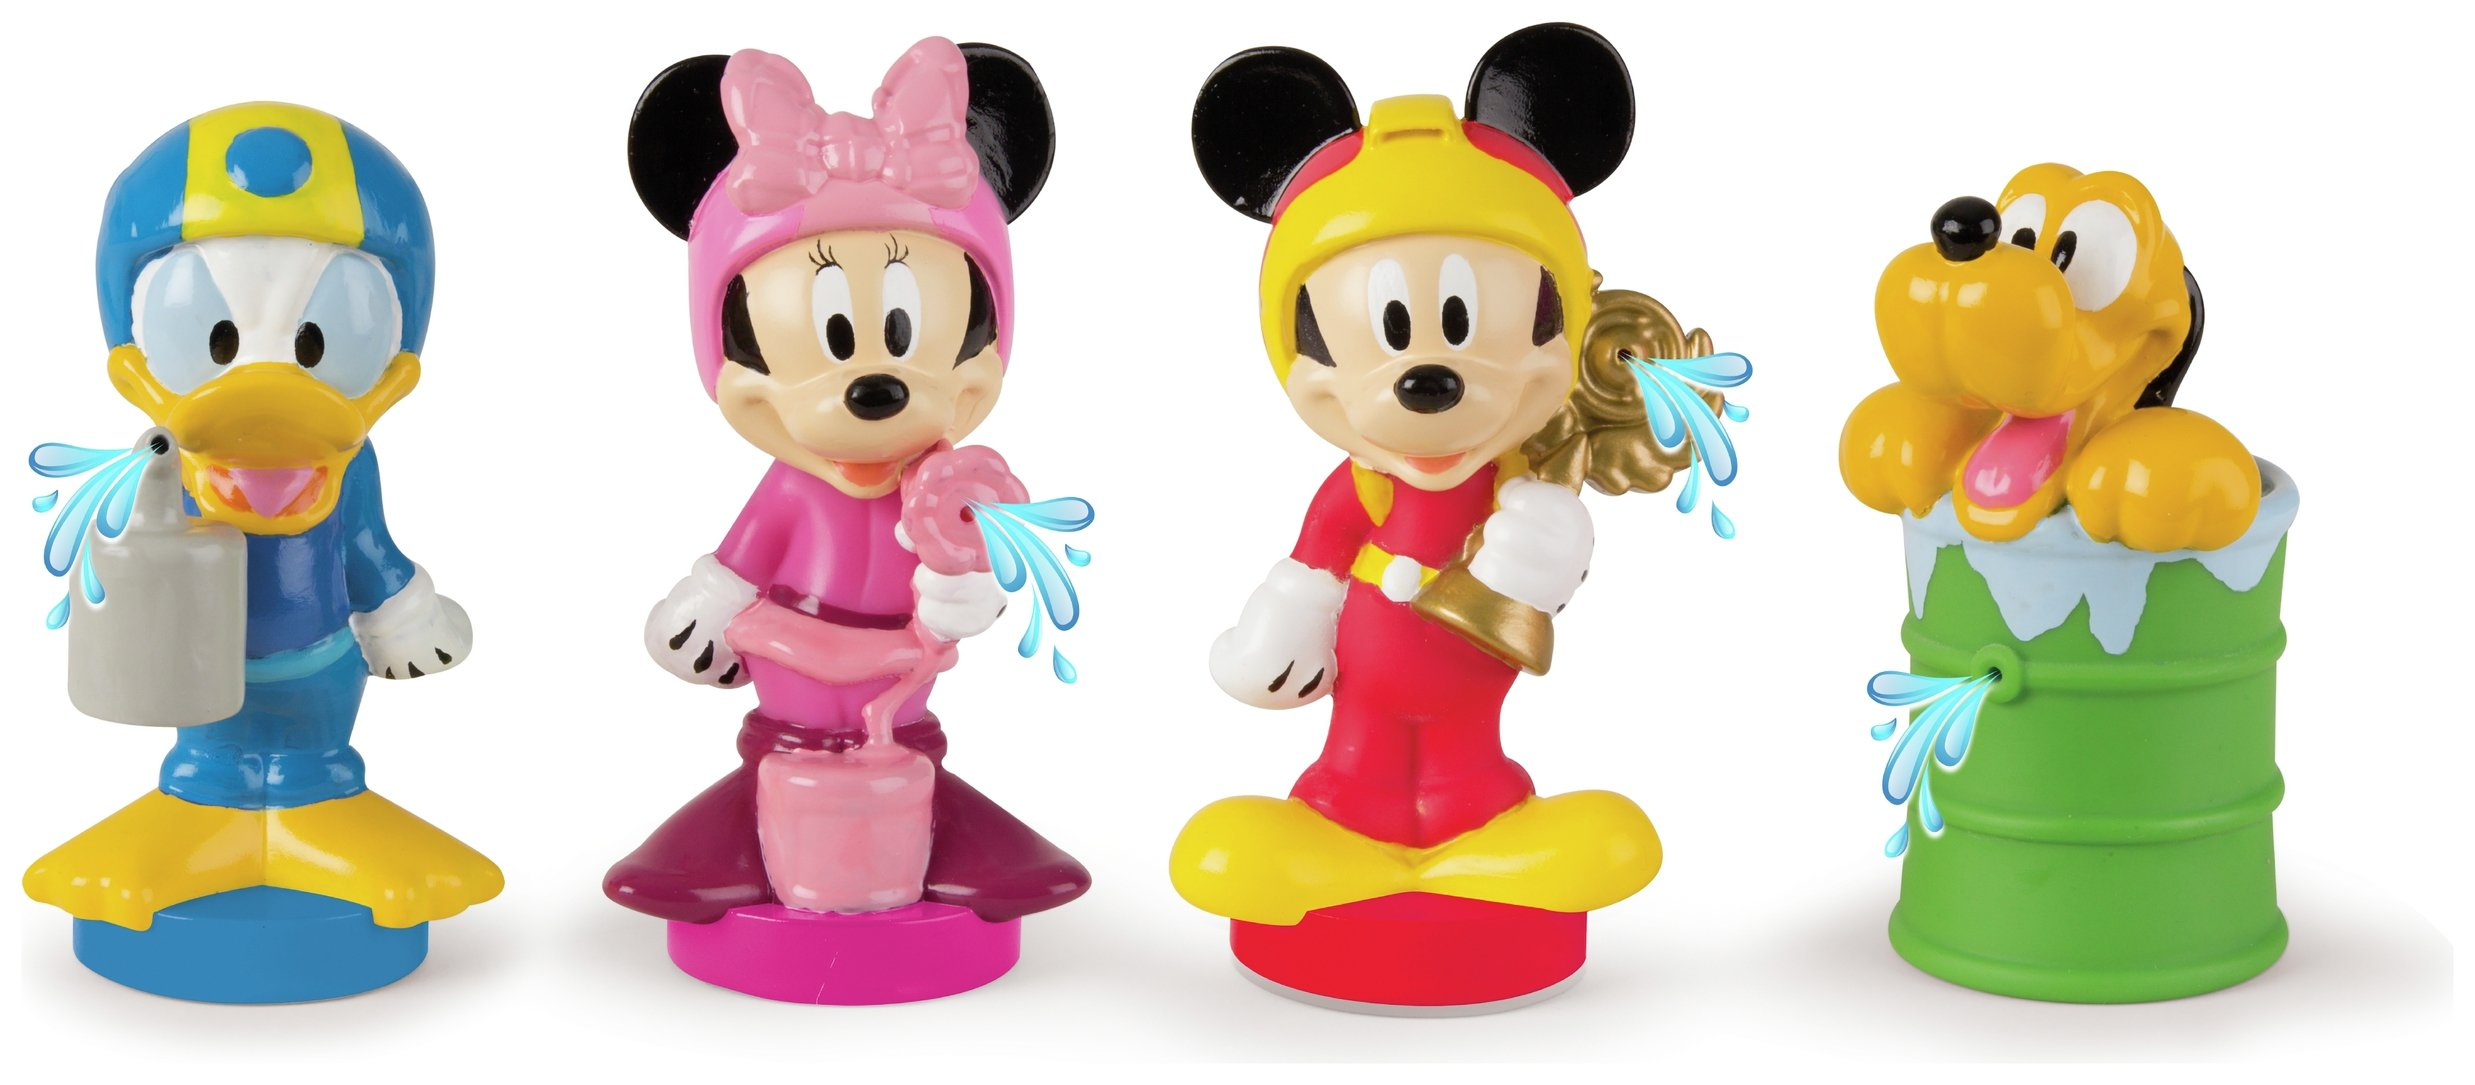 Mickey Roadster Racers Bath Figures